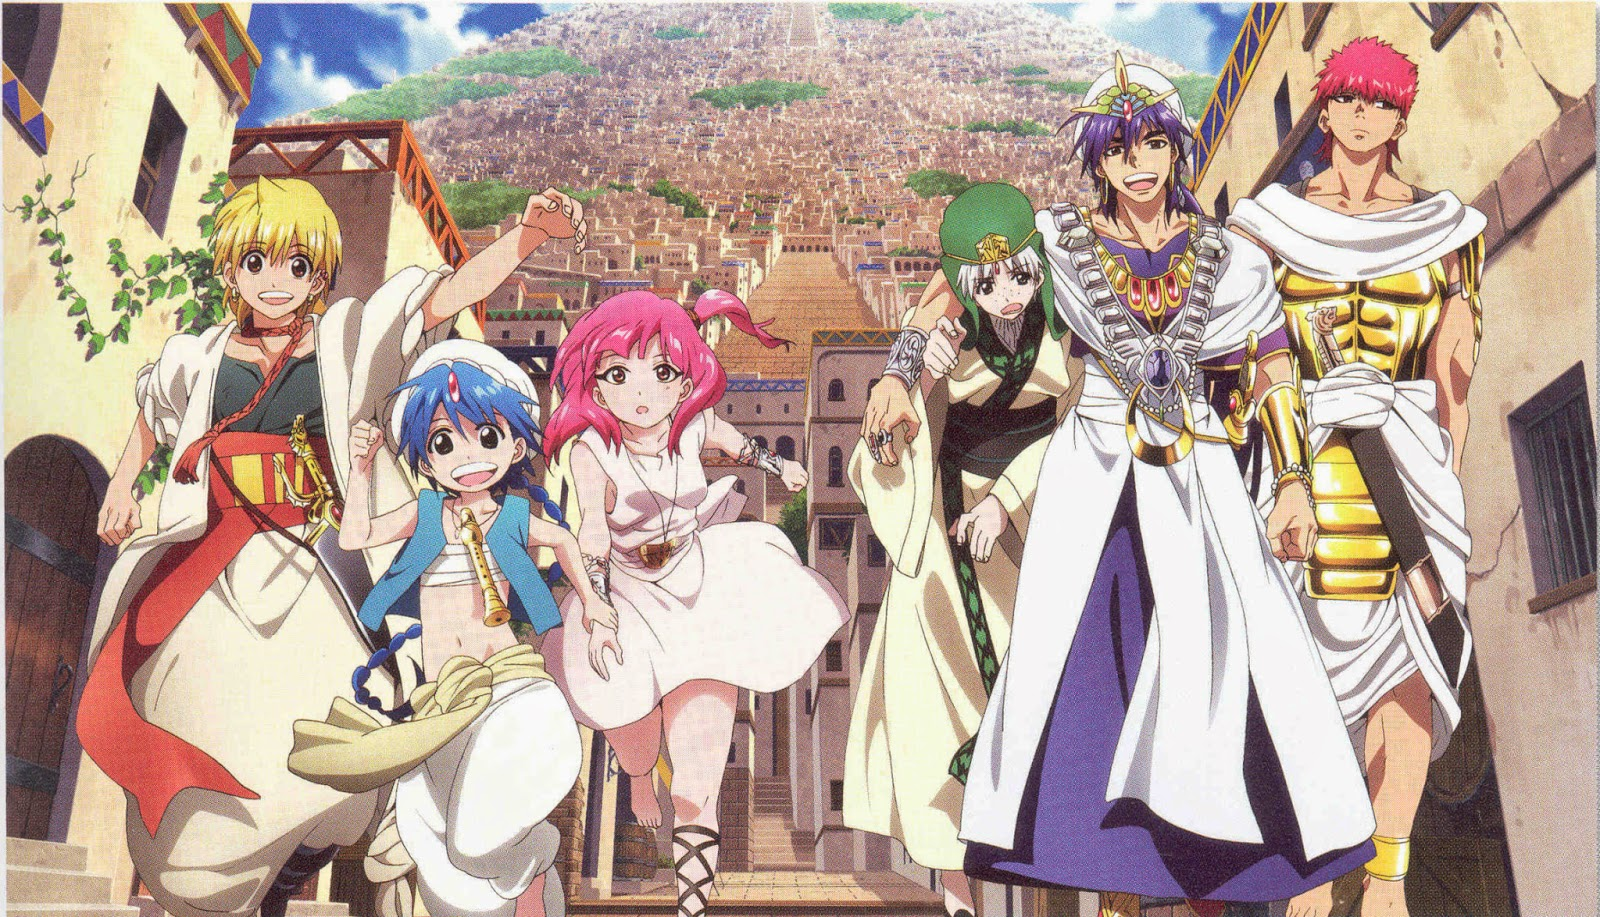 Magi the labyrinth of magic episode 23 sub indo / Tortugas ninja